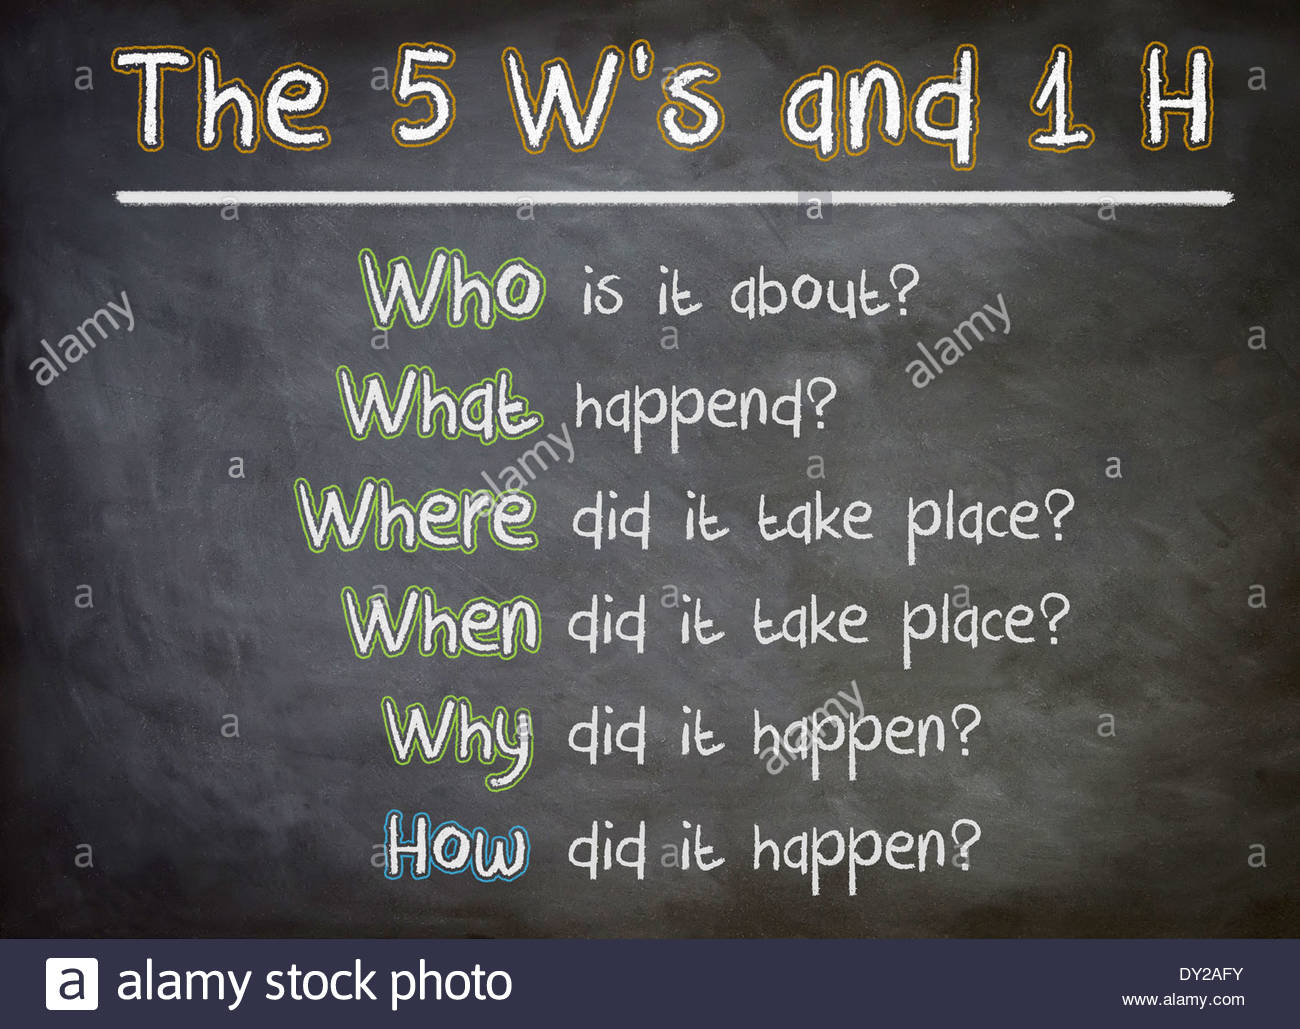 The Five Ws And One H Stock Photo